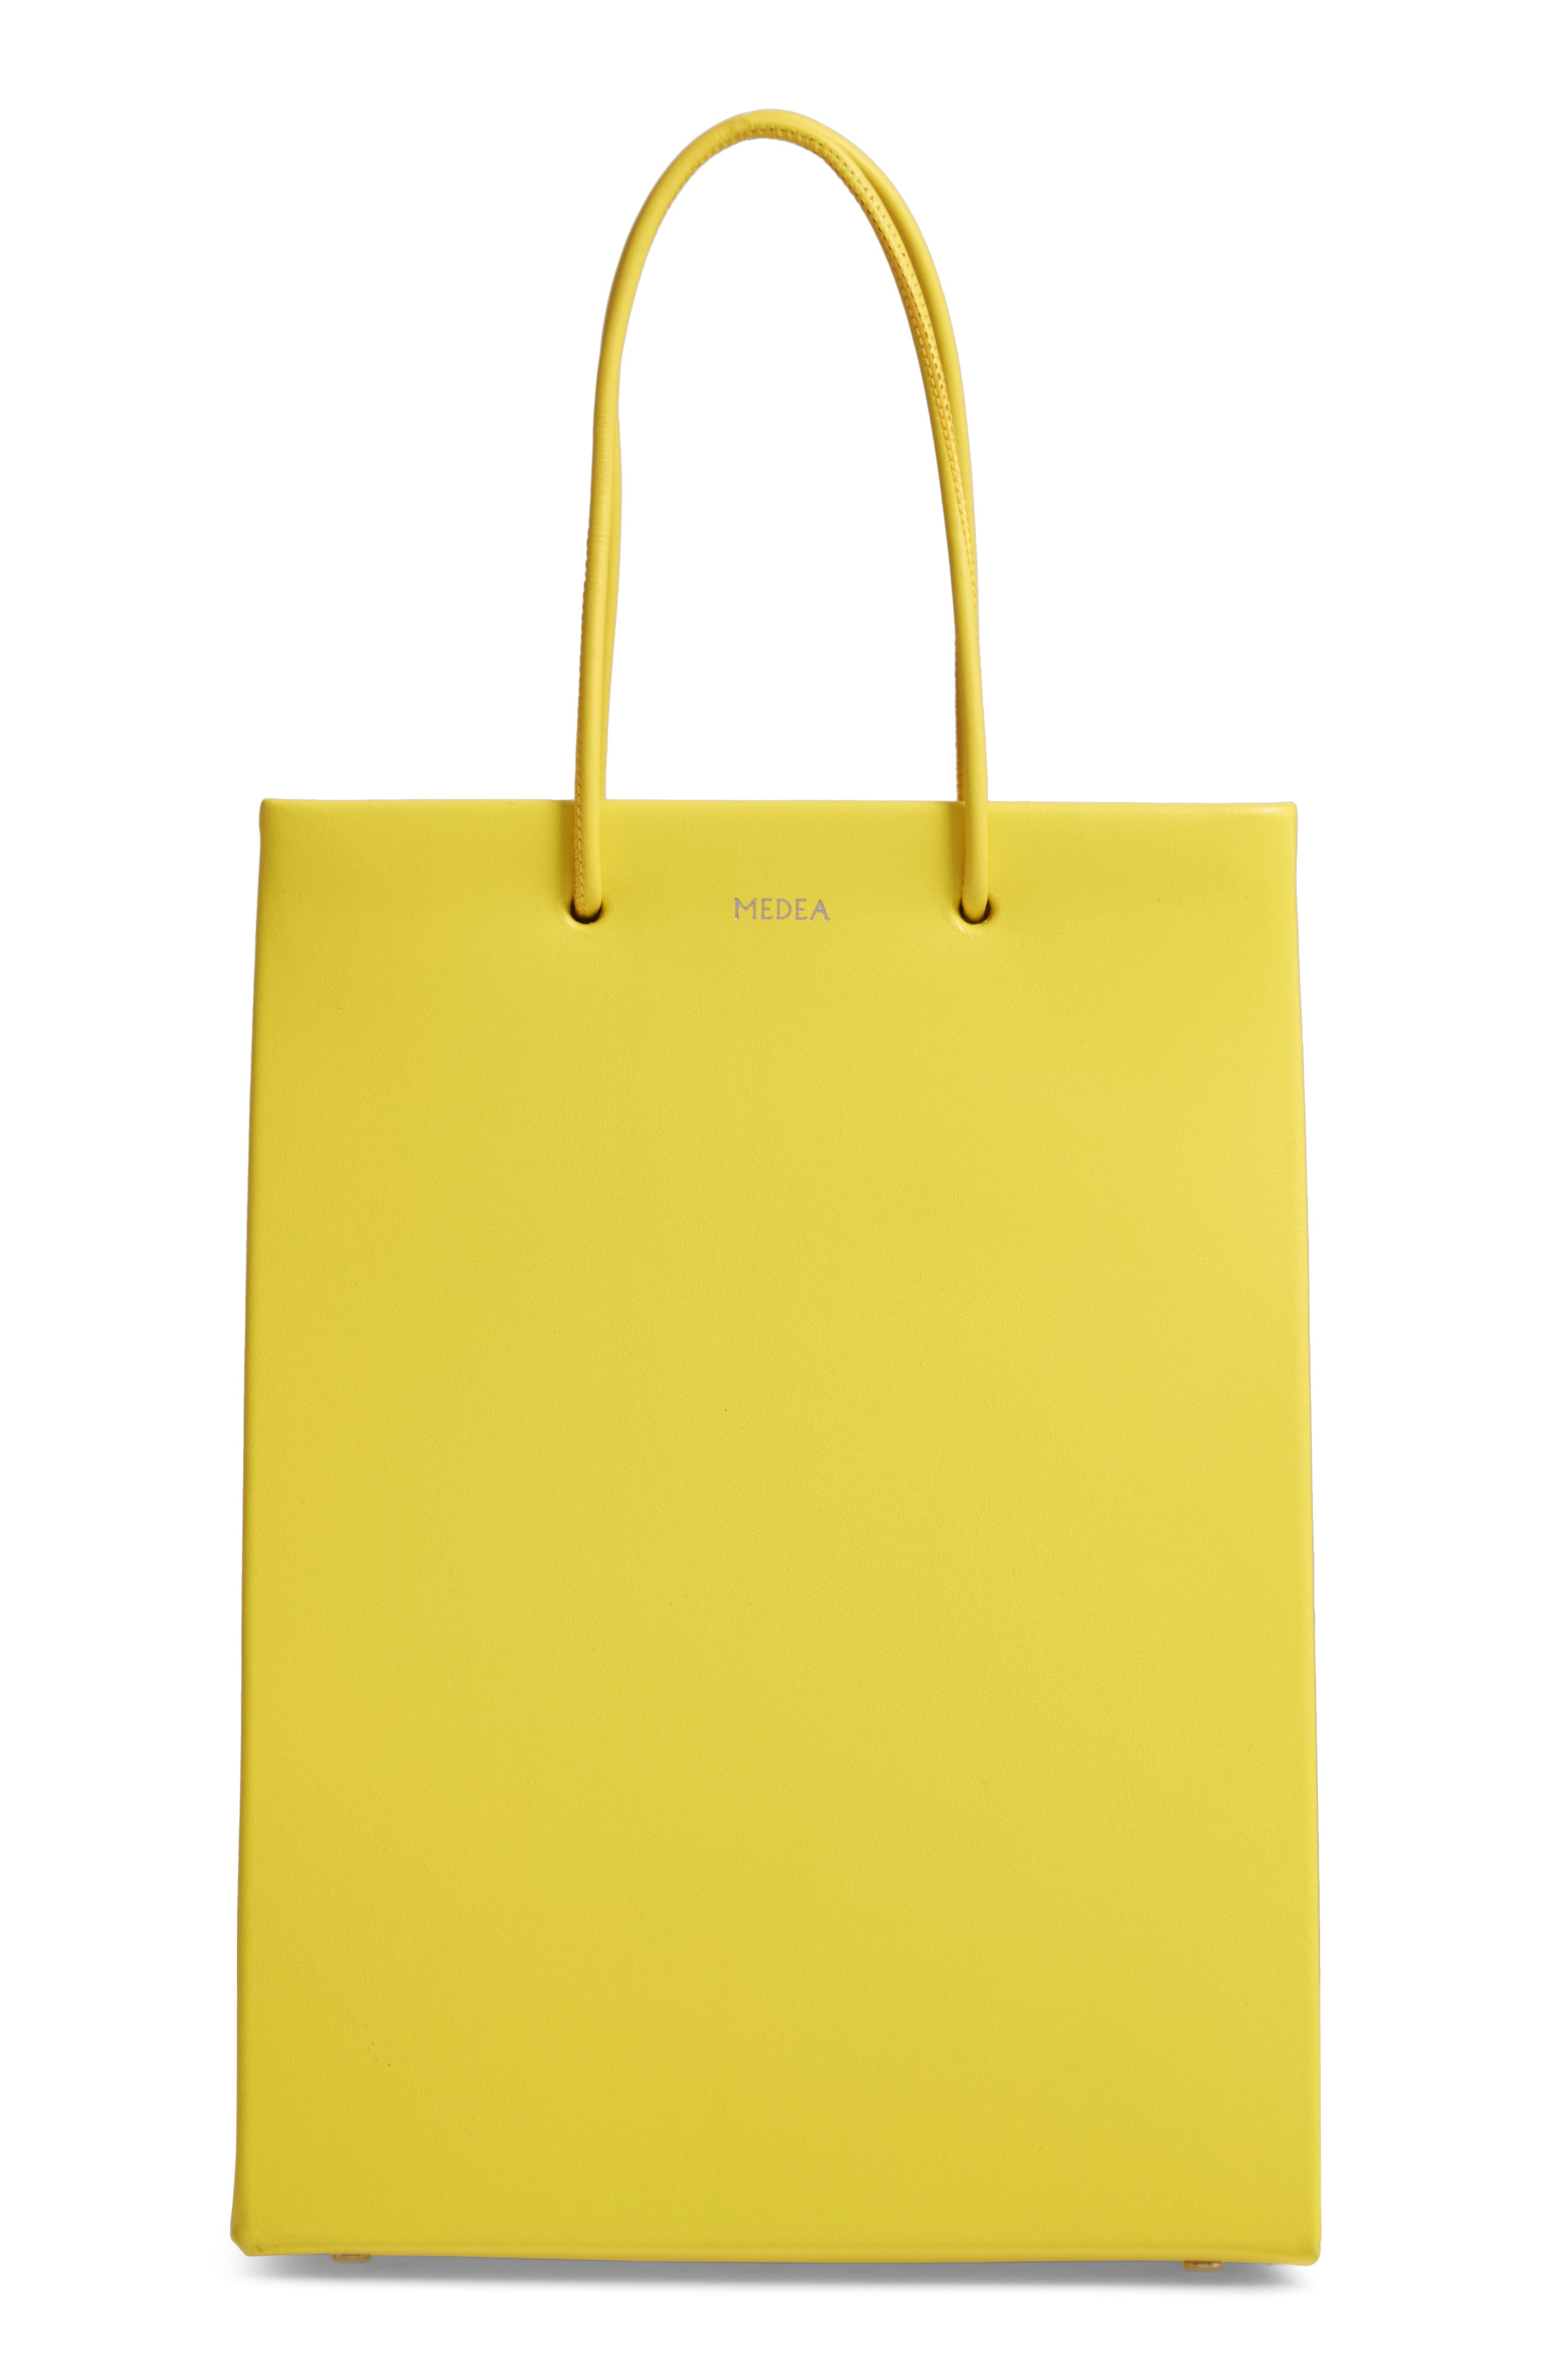 A happy asseccoire – the yellow bag